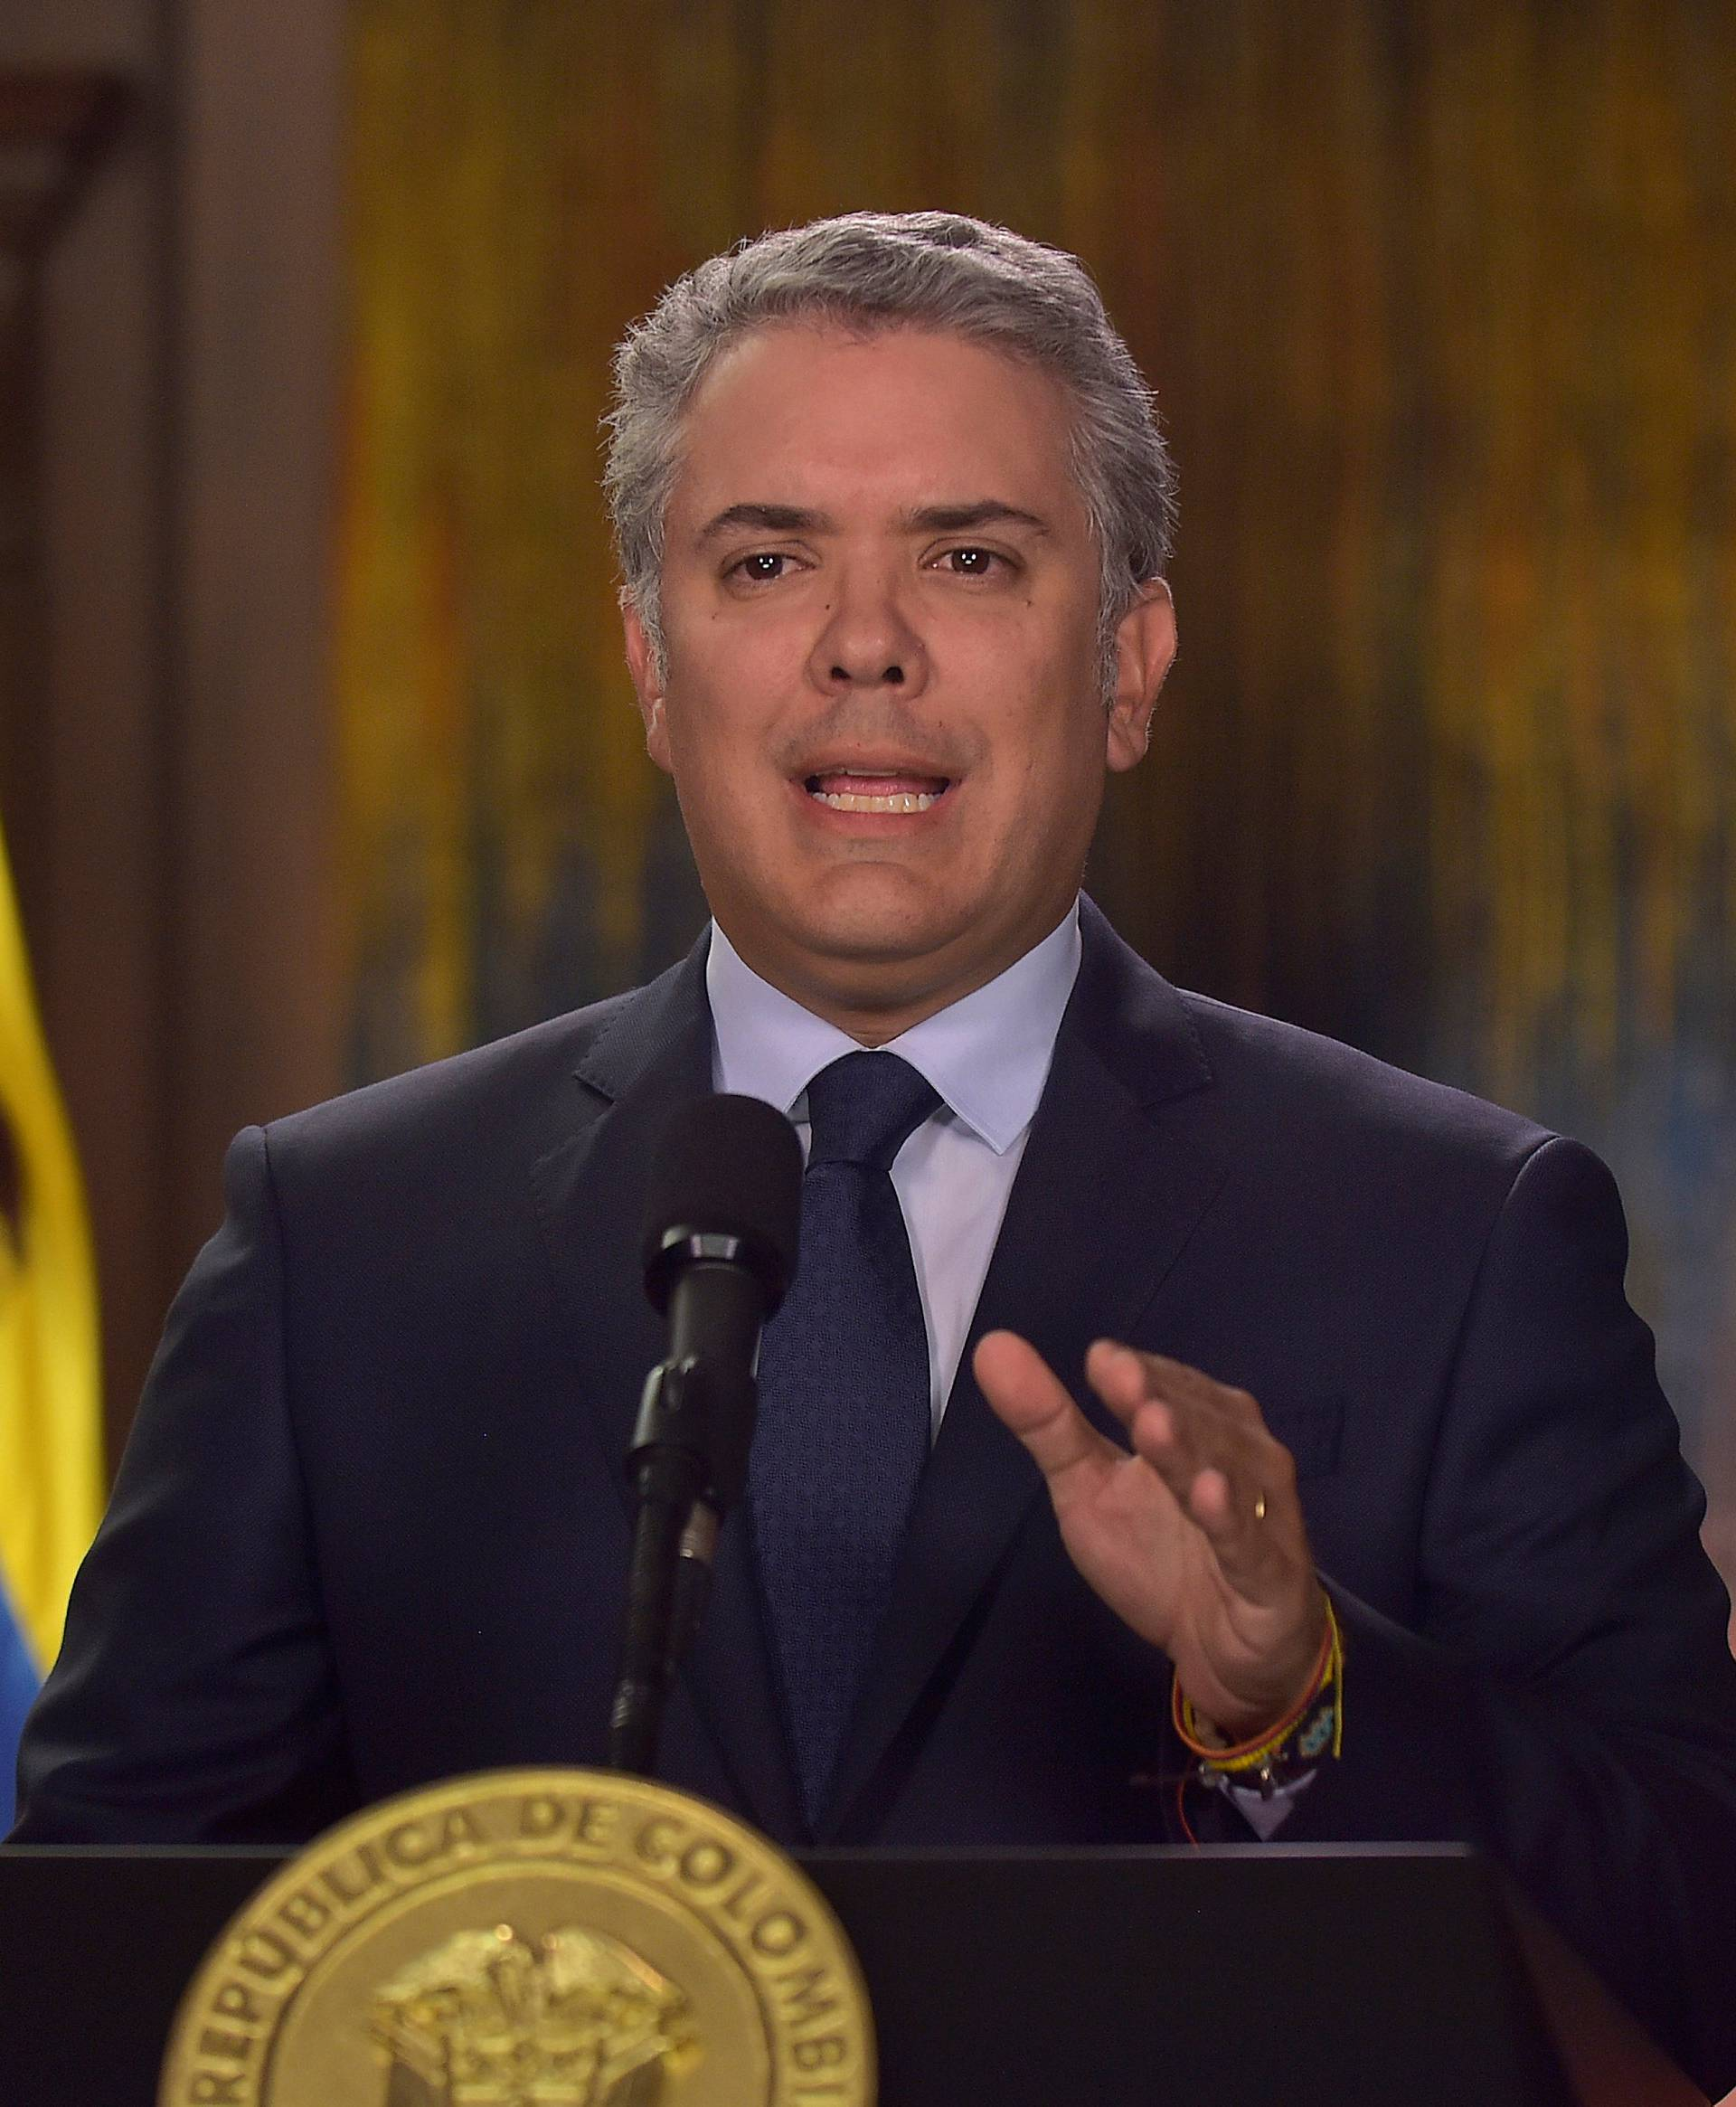 Colombian President Ivan Duque Marquez talks about the cancellation of dialogues with the ELN guerrilla after the car bomb attack in Bogota